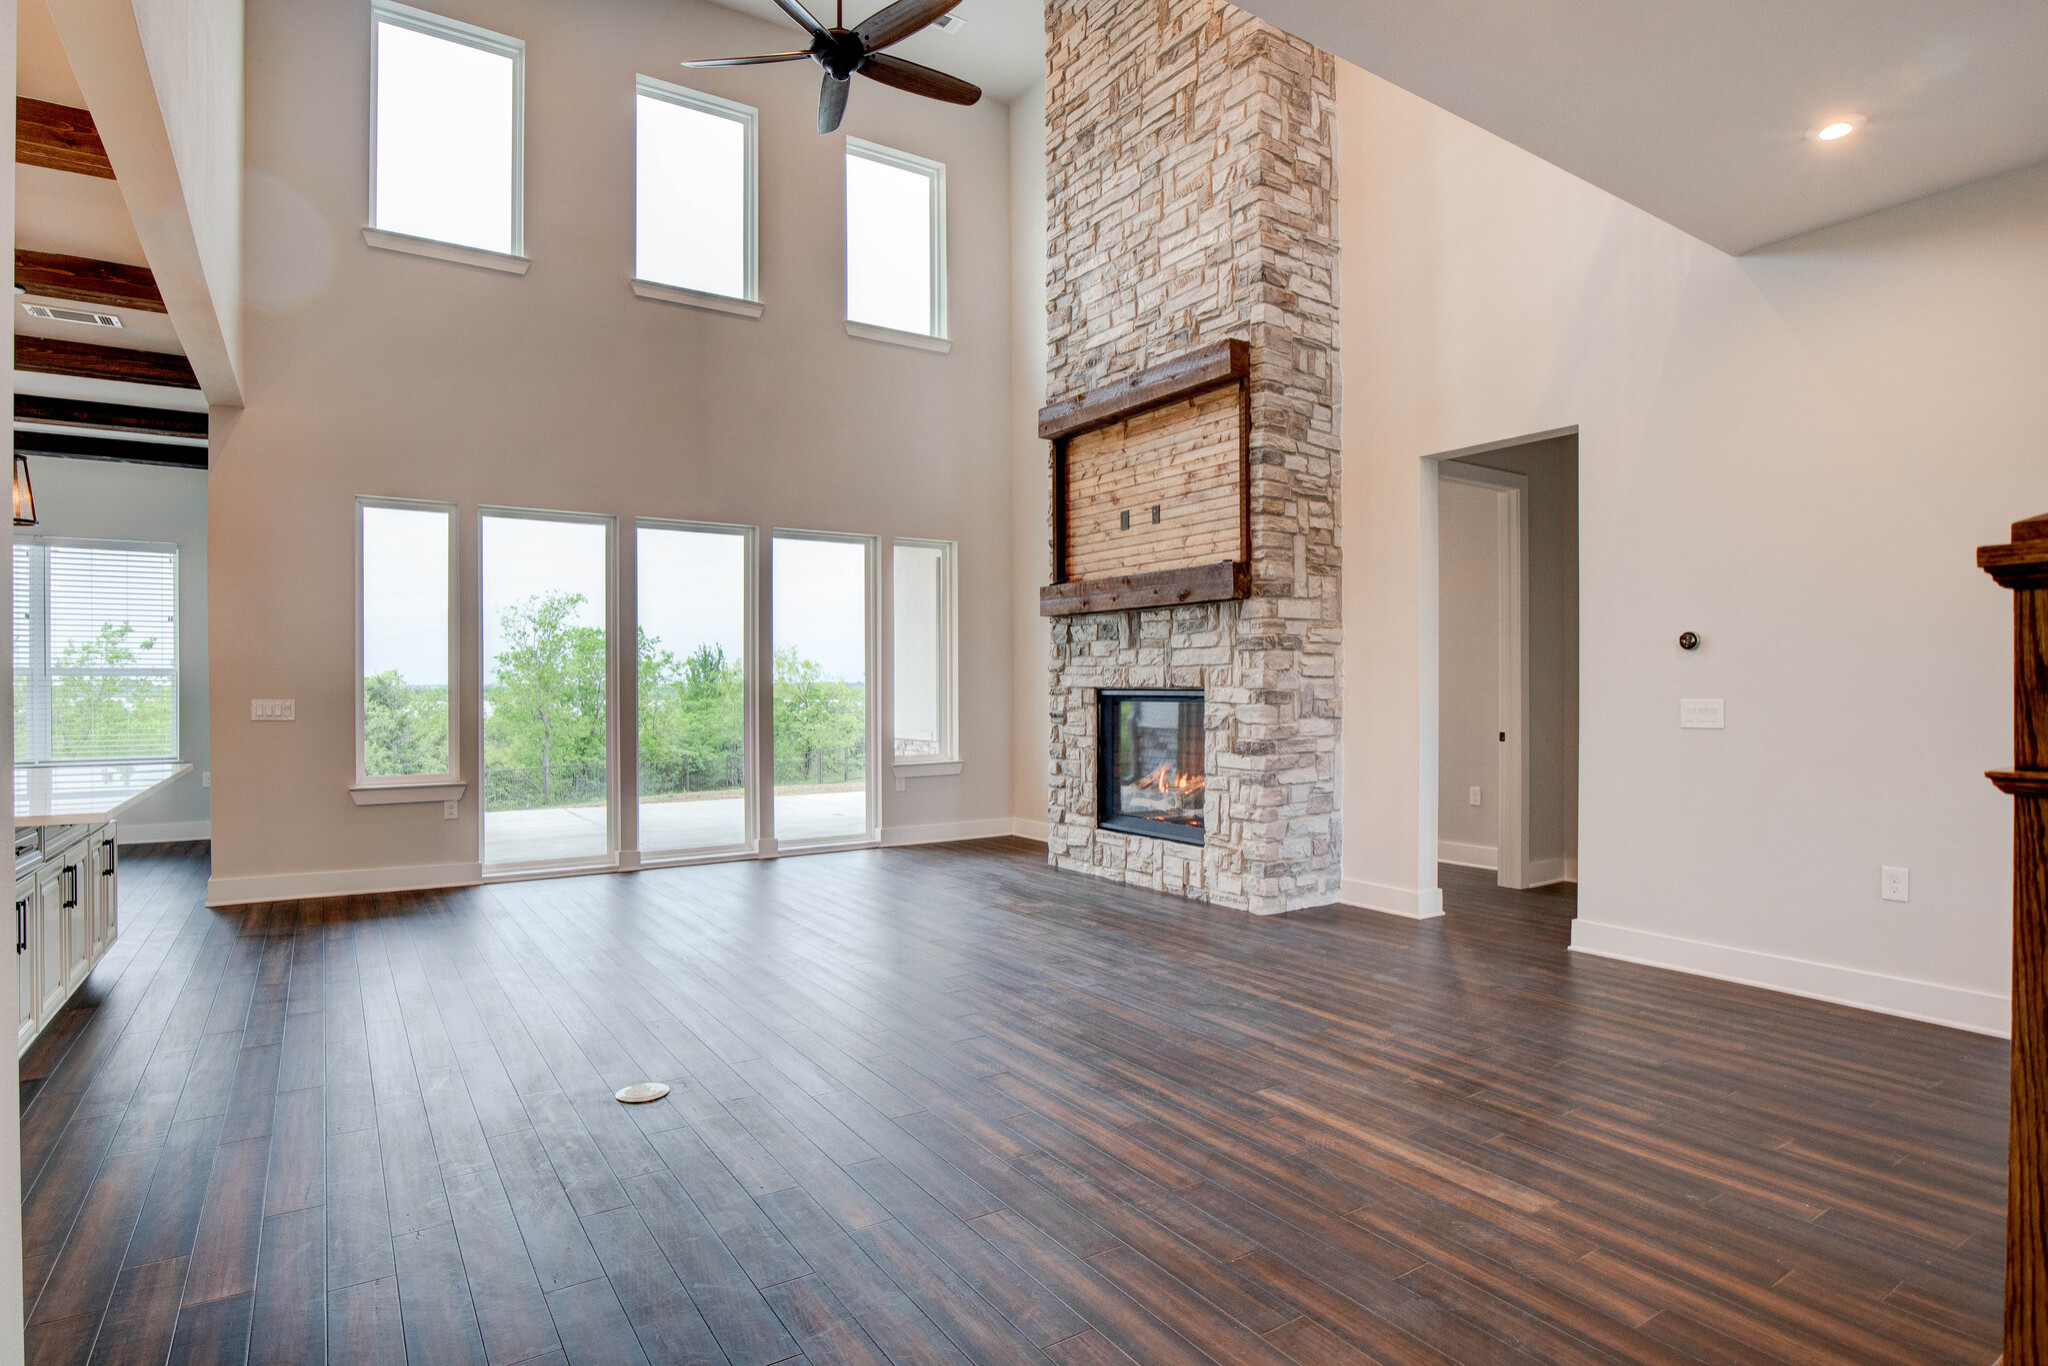 Transitional Two-Story Lakehouse